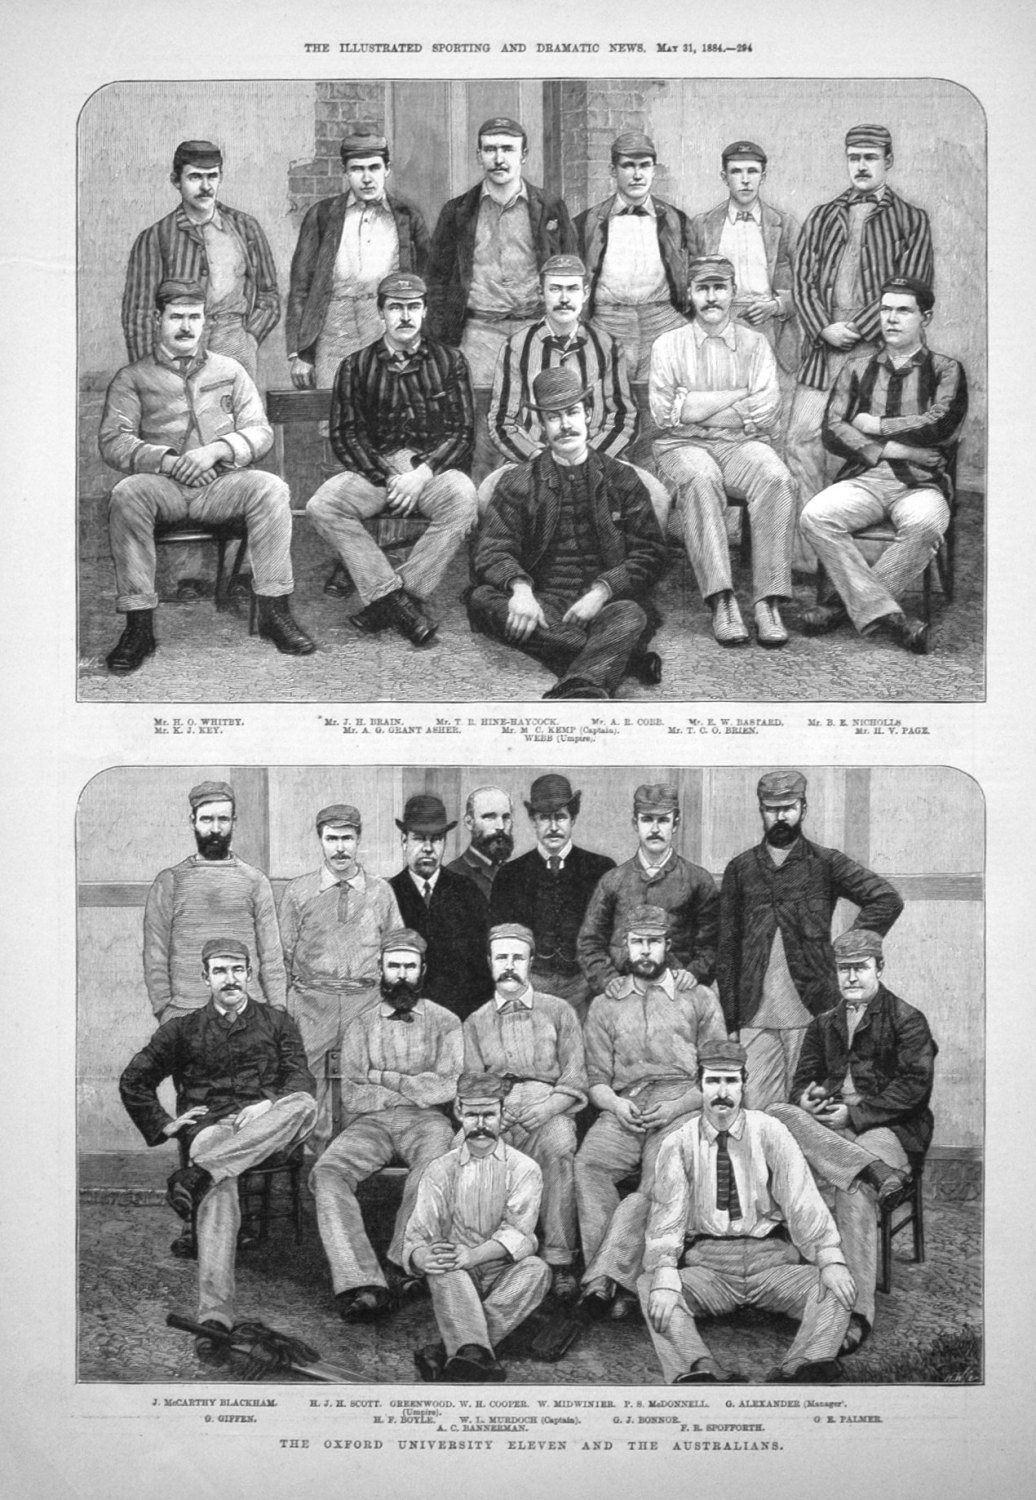 The Oxford University Eleven and the Australians. 1884